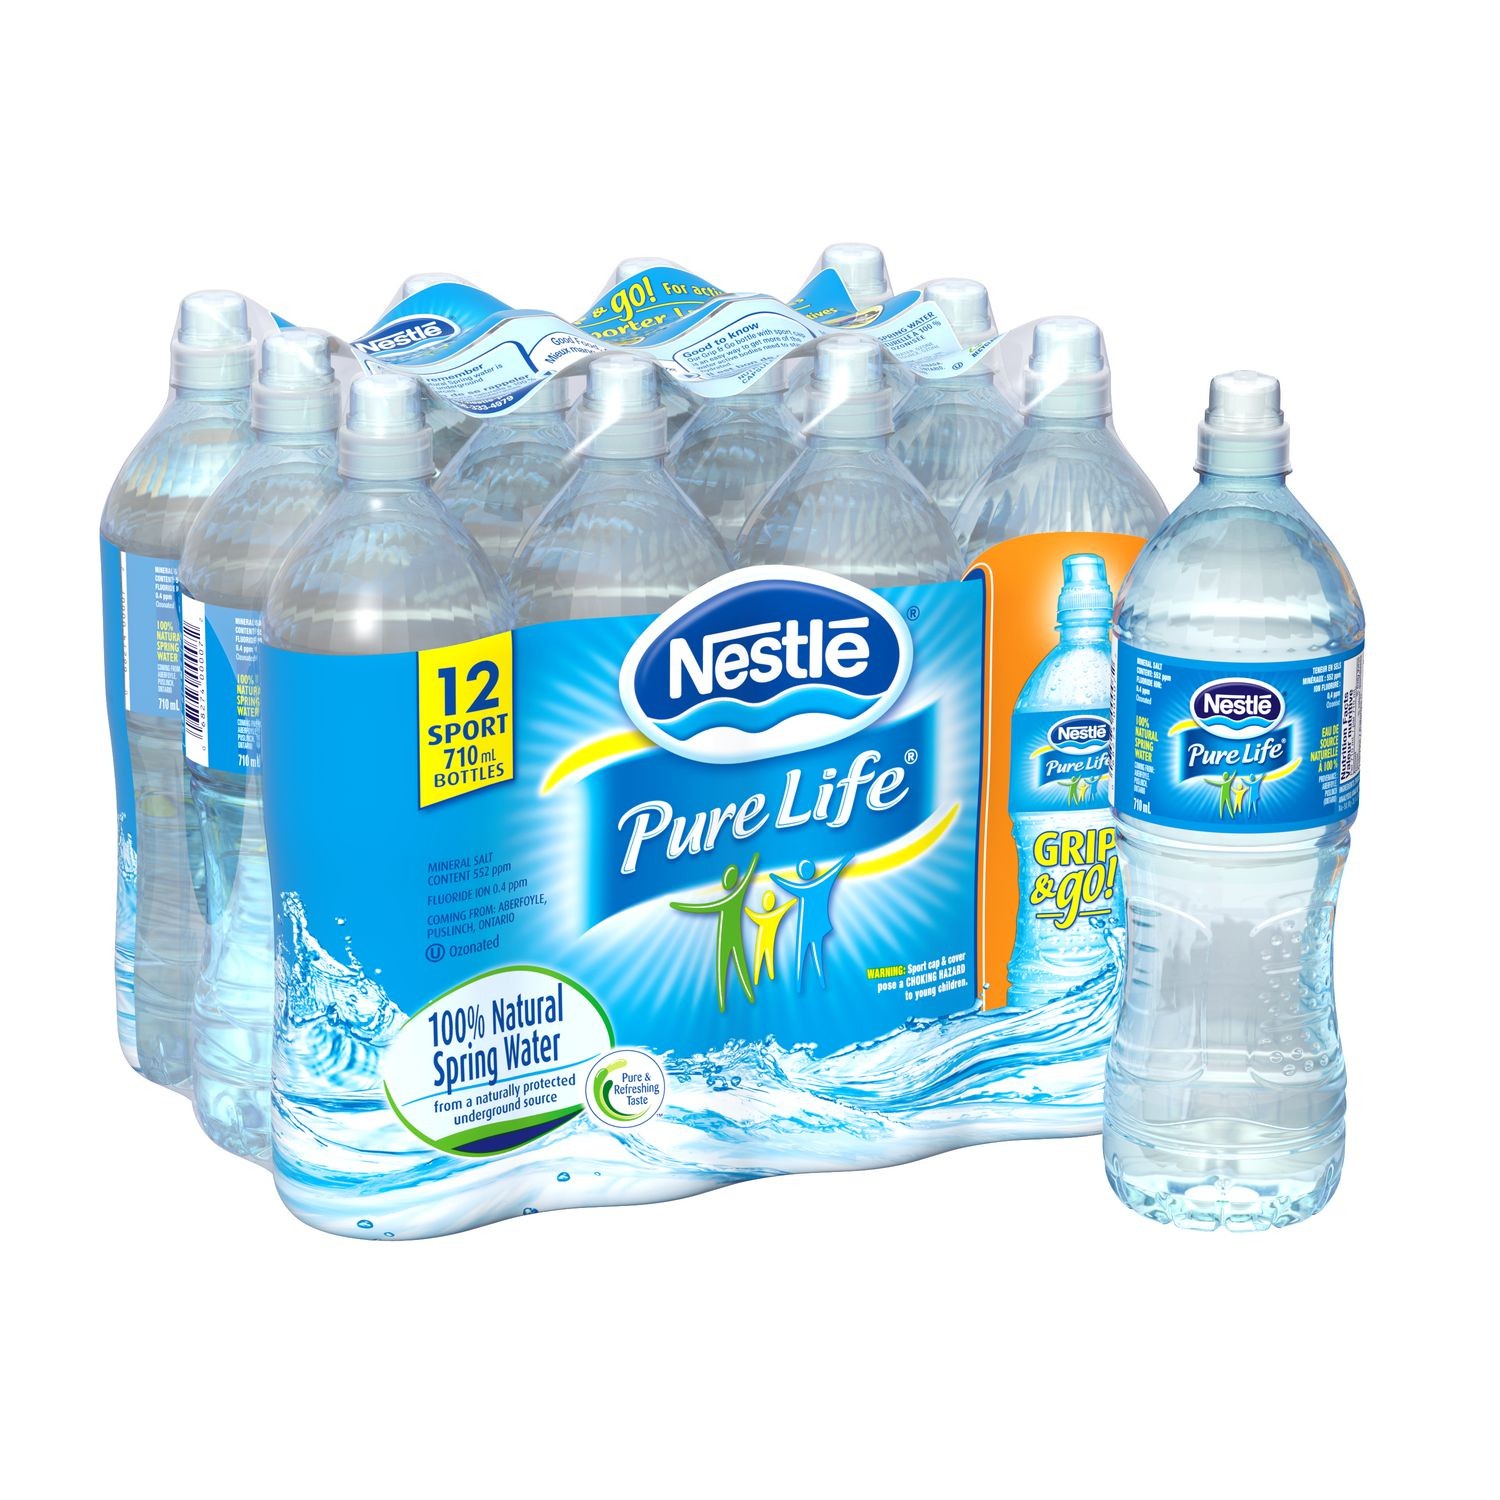 4f3abaa266 Nestlé Pure Life Nestlé® Pure Life® Natural Spring Water - image 1 of 4  zoomed image